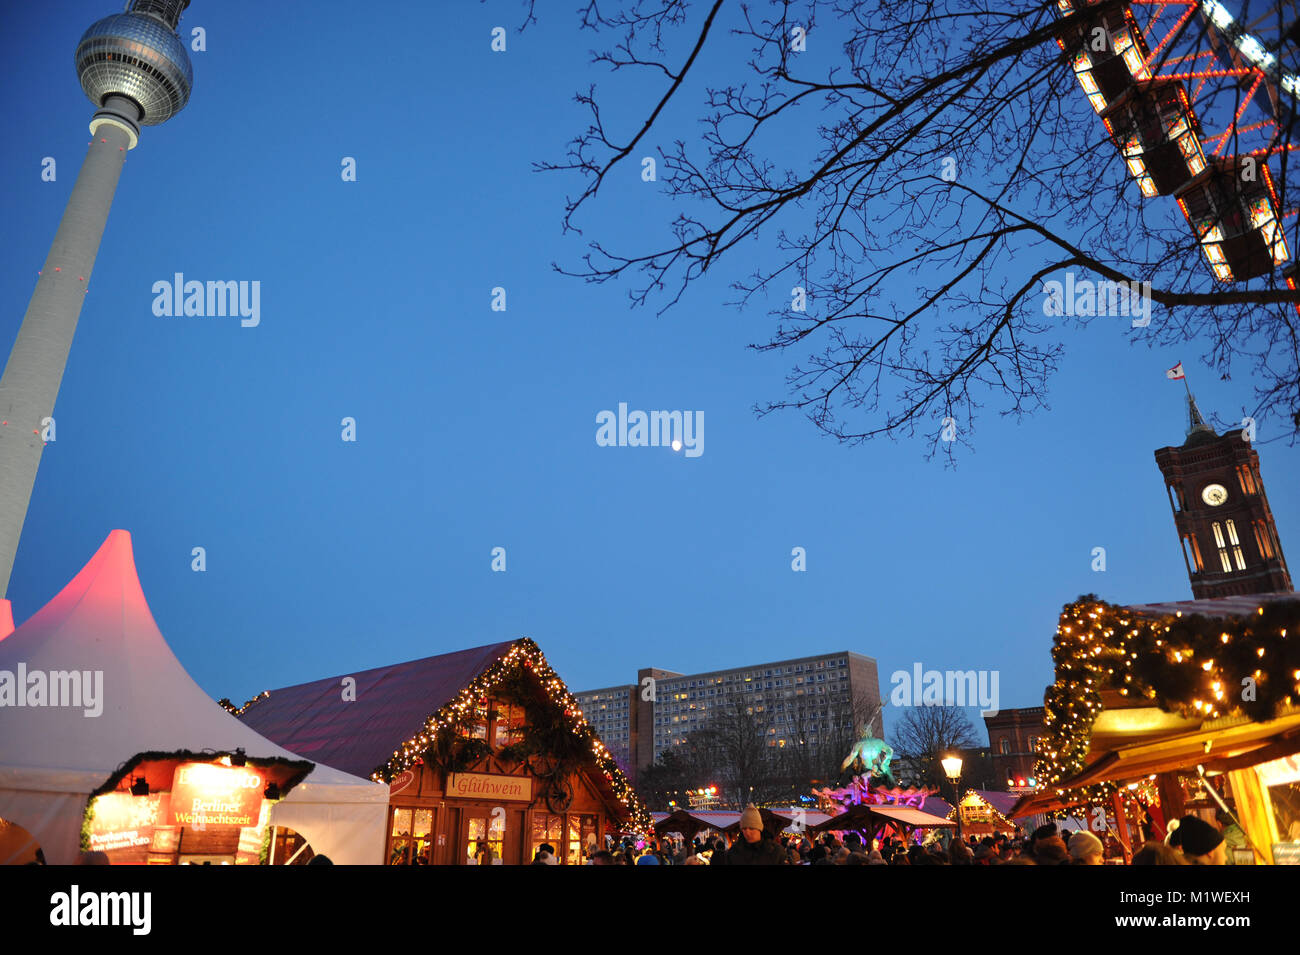 Christmas market 'Berliner Weihnachtszeit' at the Red Town Hall, Berlin - Stock Image